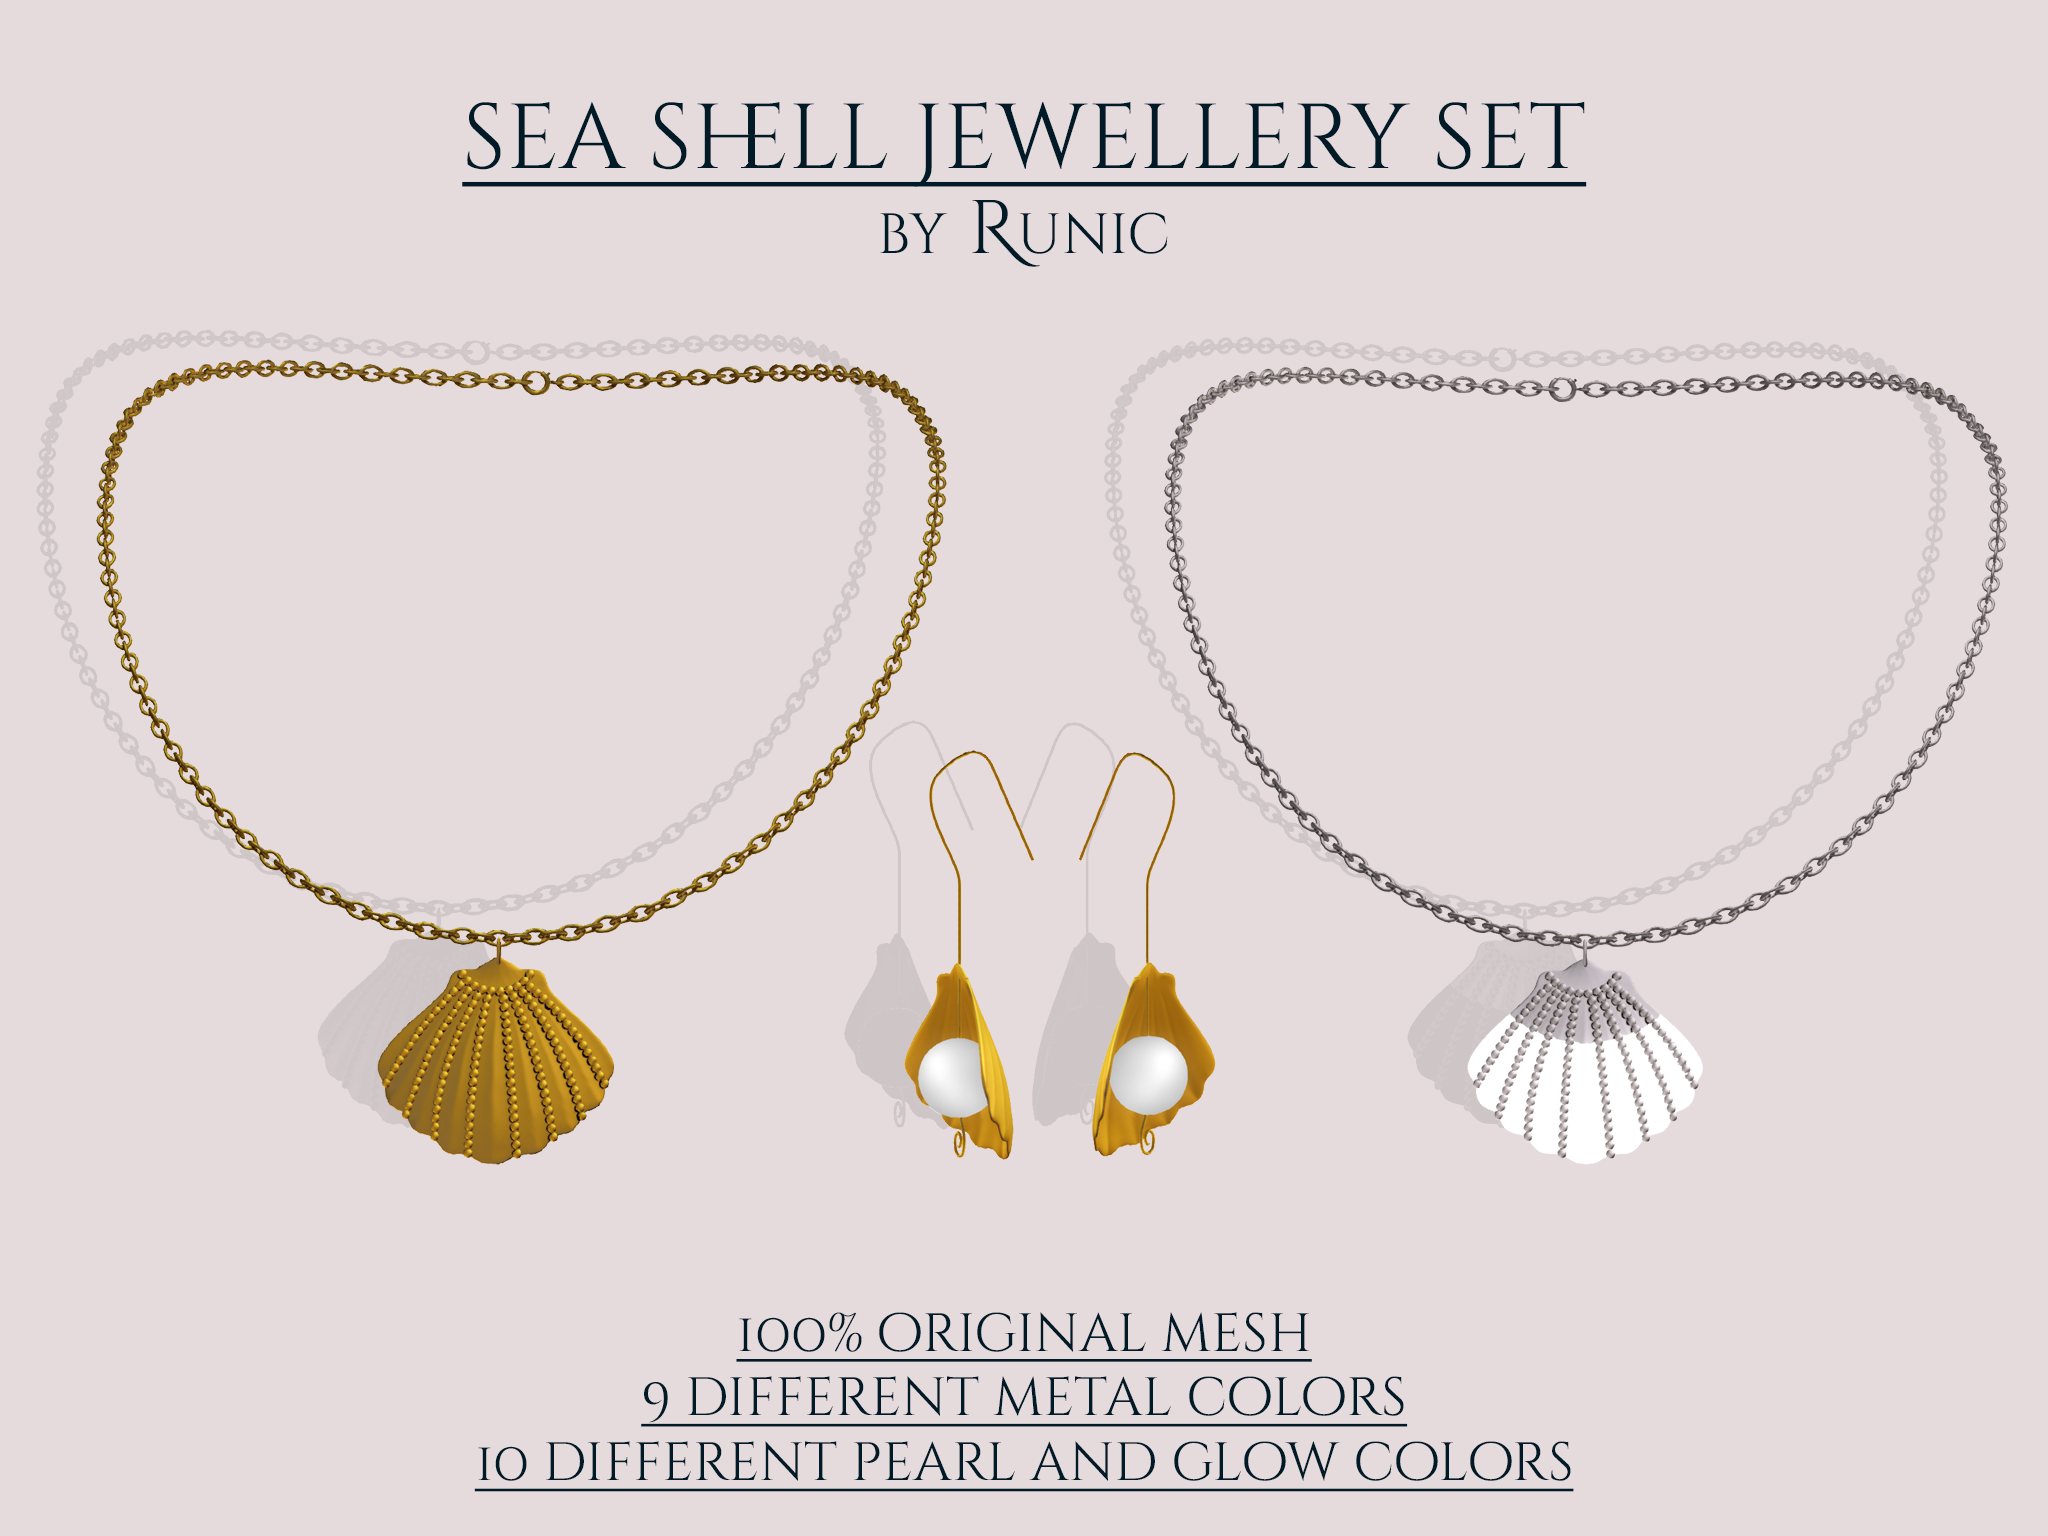 Runic - Sea Shell Jewellery Set